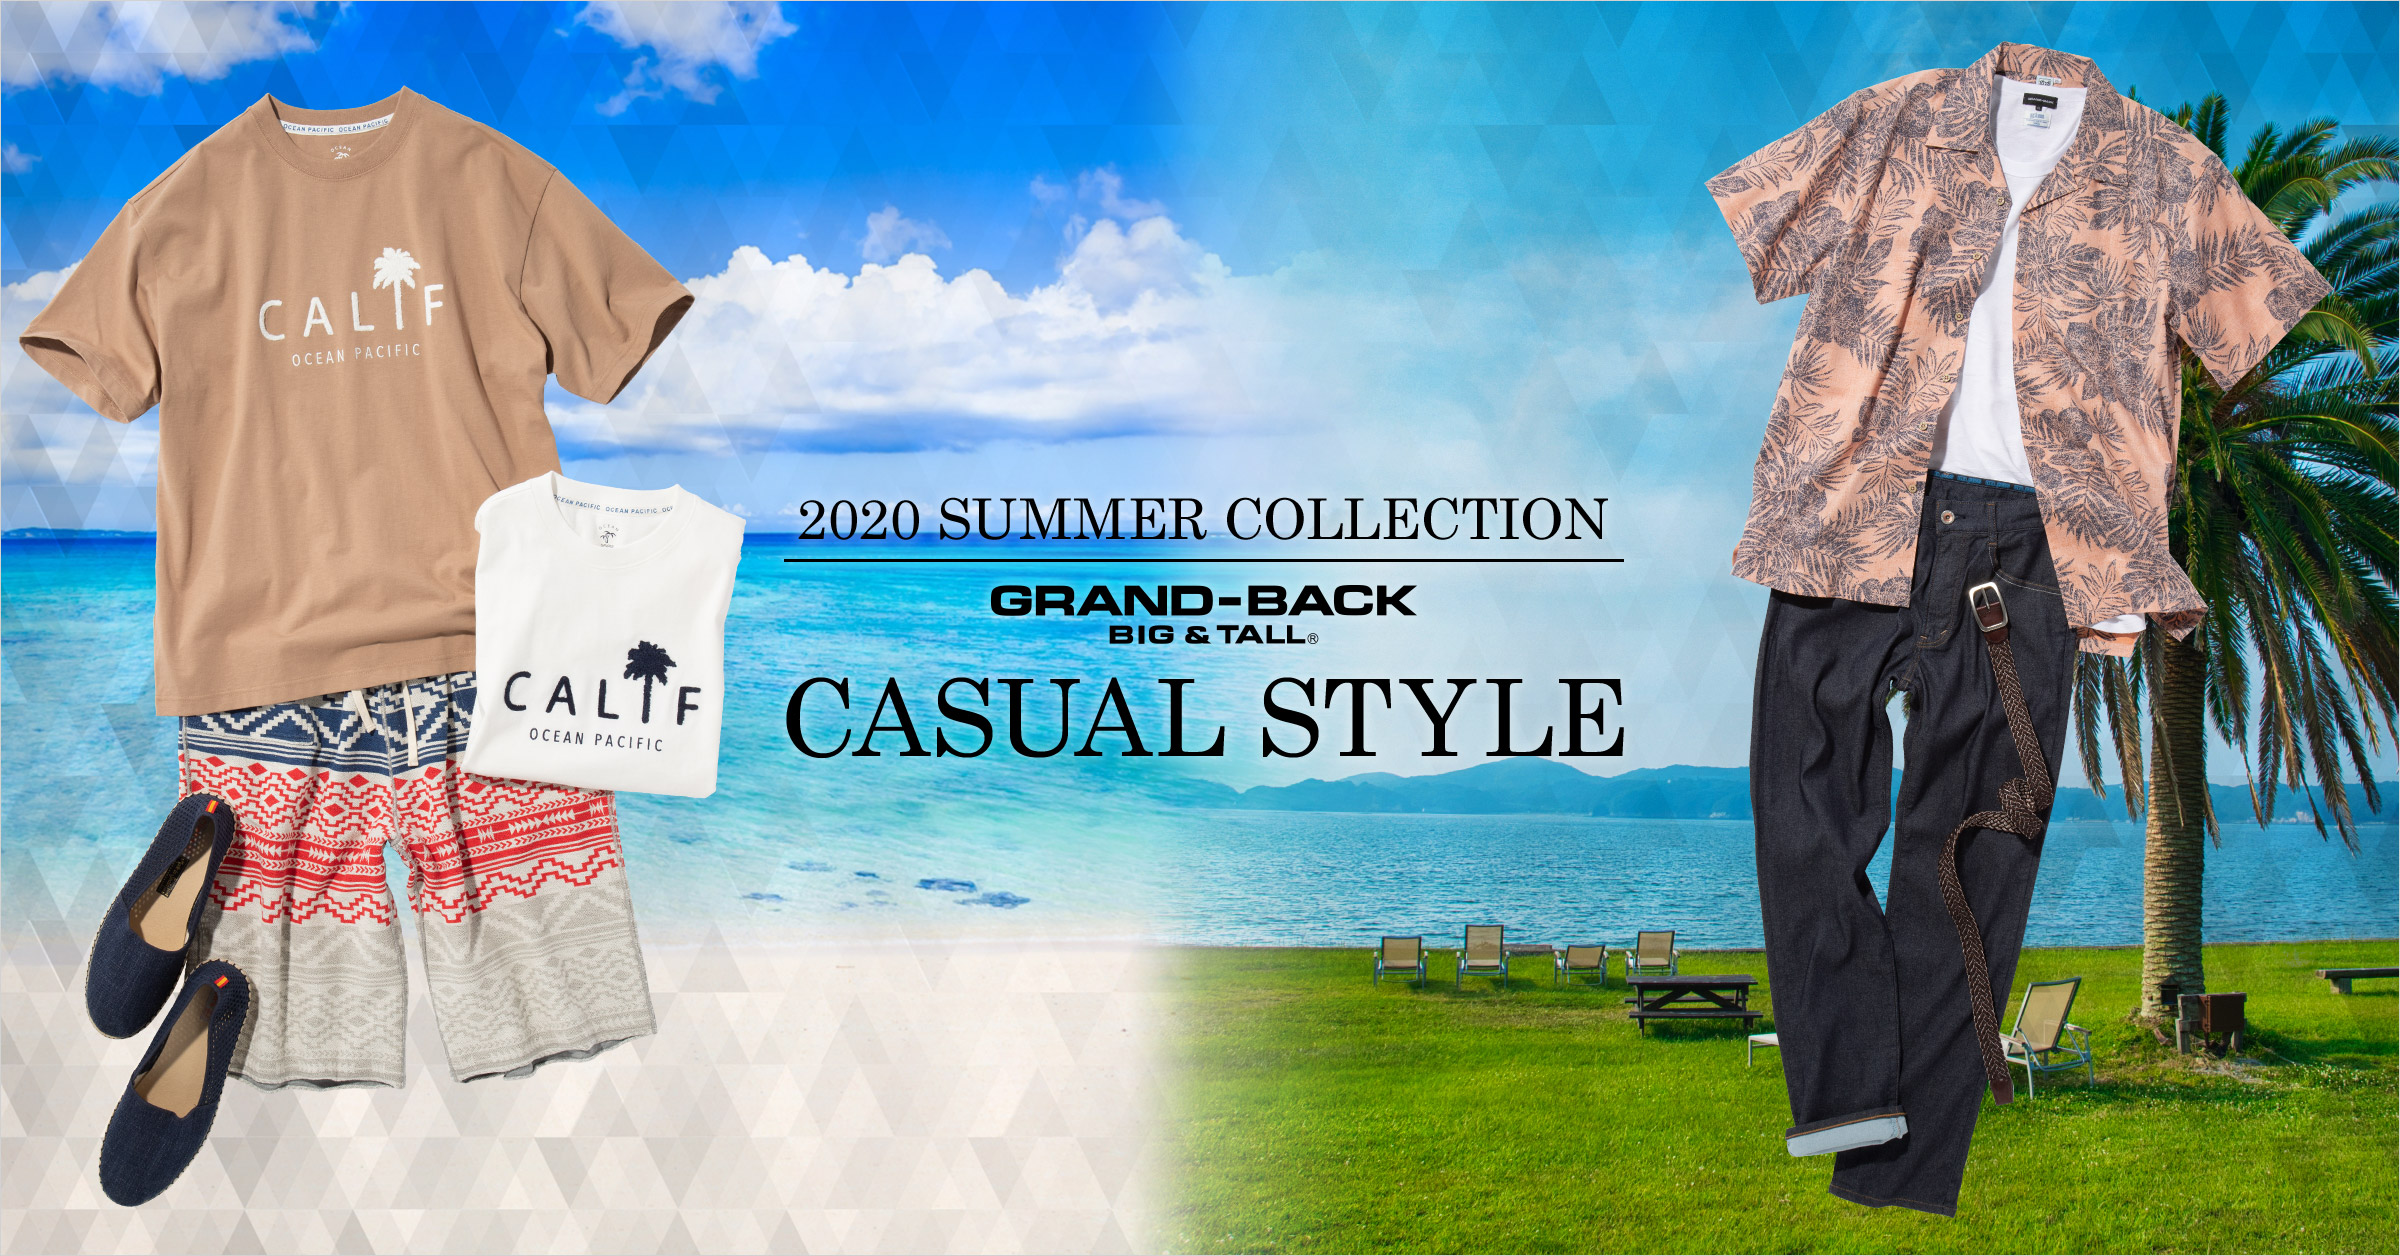 2020 Summer Casual style